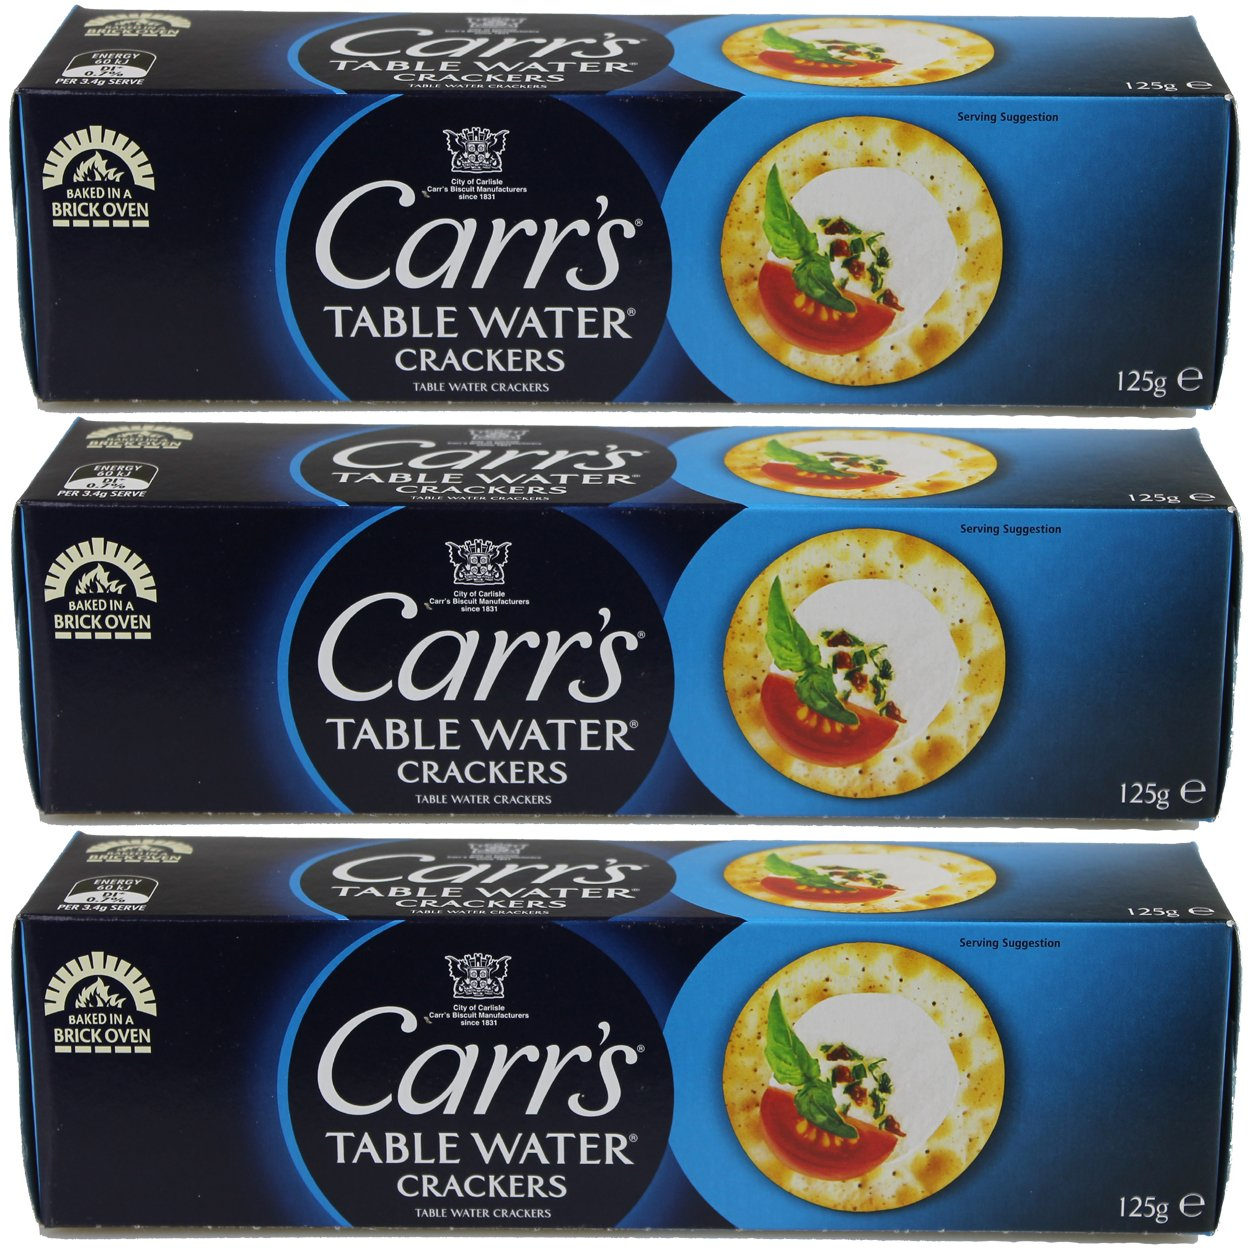 Carrs Table Water Crackers, (4.40-Ounce 125gm) (Pack of 3) by The Truly Scrumptious Baking Company